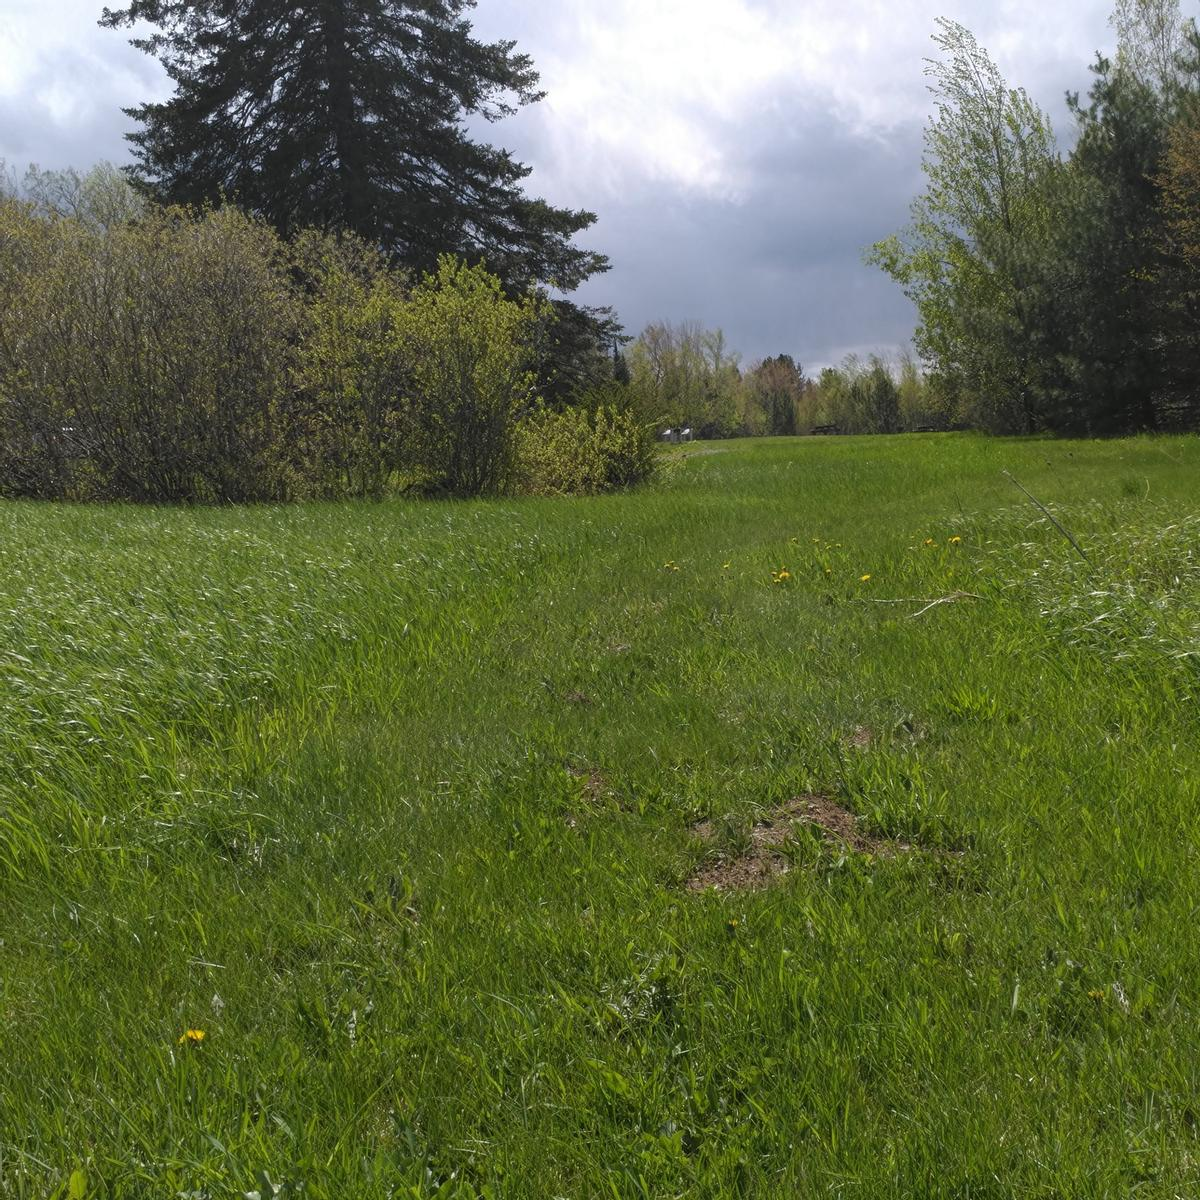 It is difficult to distinguish the trail in a mown lawn